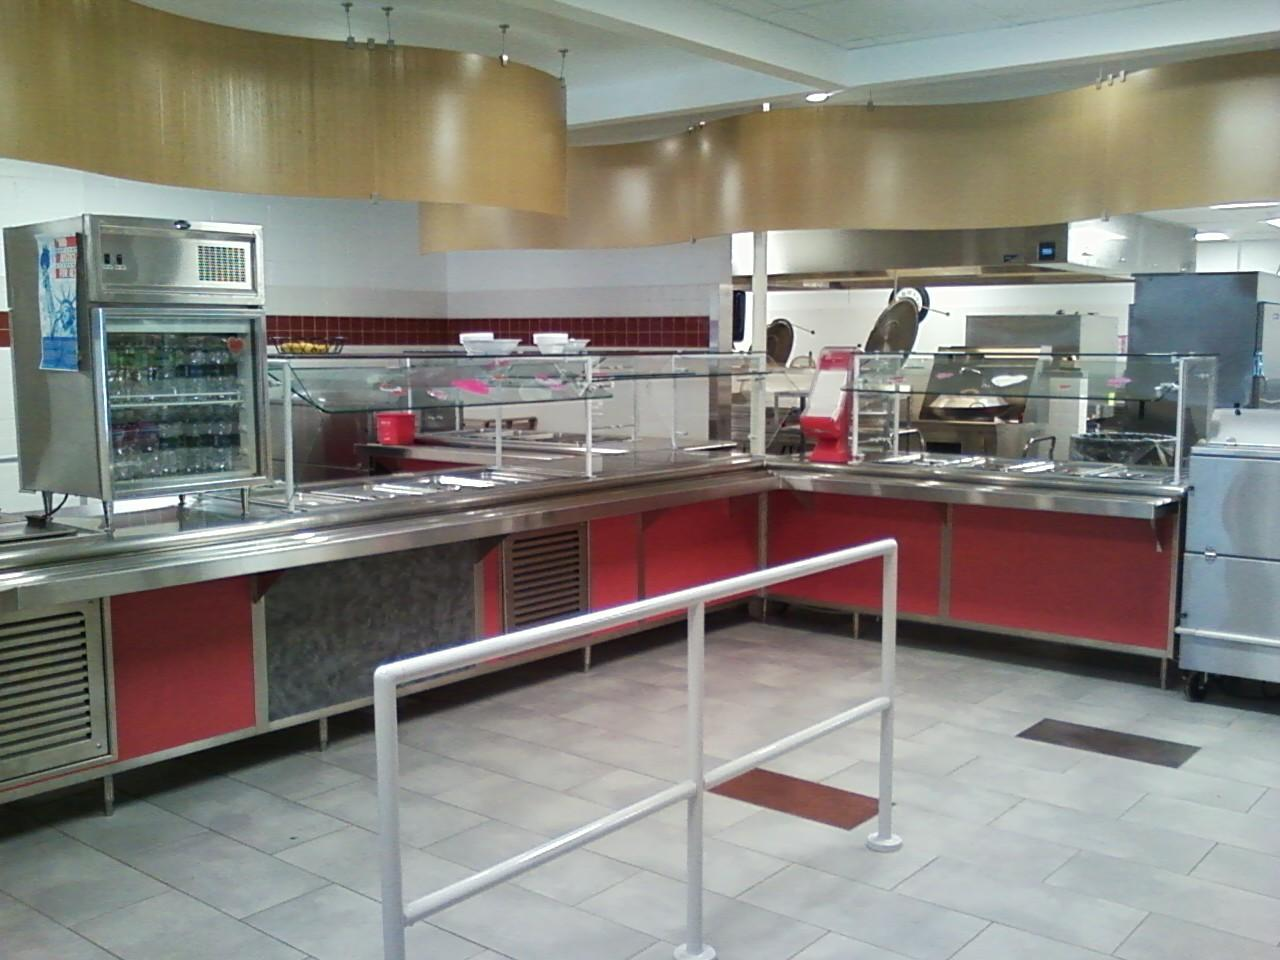 Spencer vanetten school district new serving line cooking for Culinary kitchen equipment